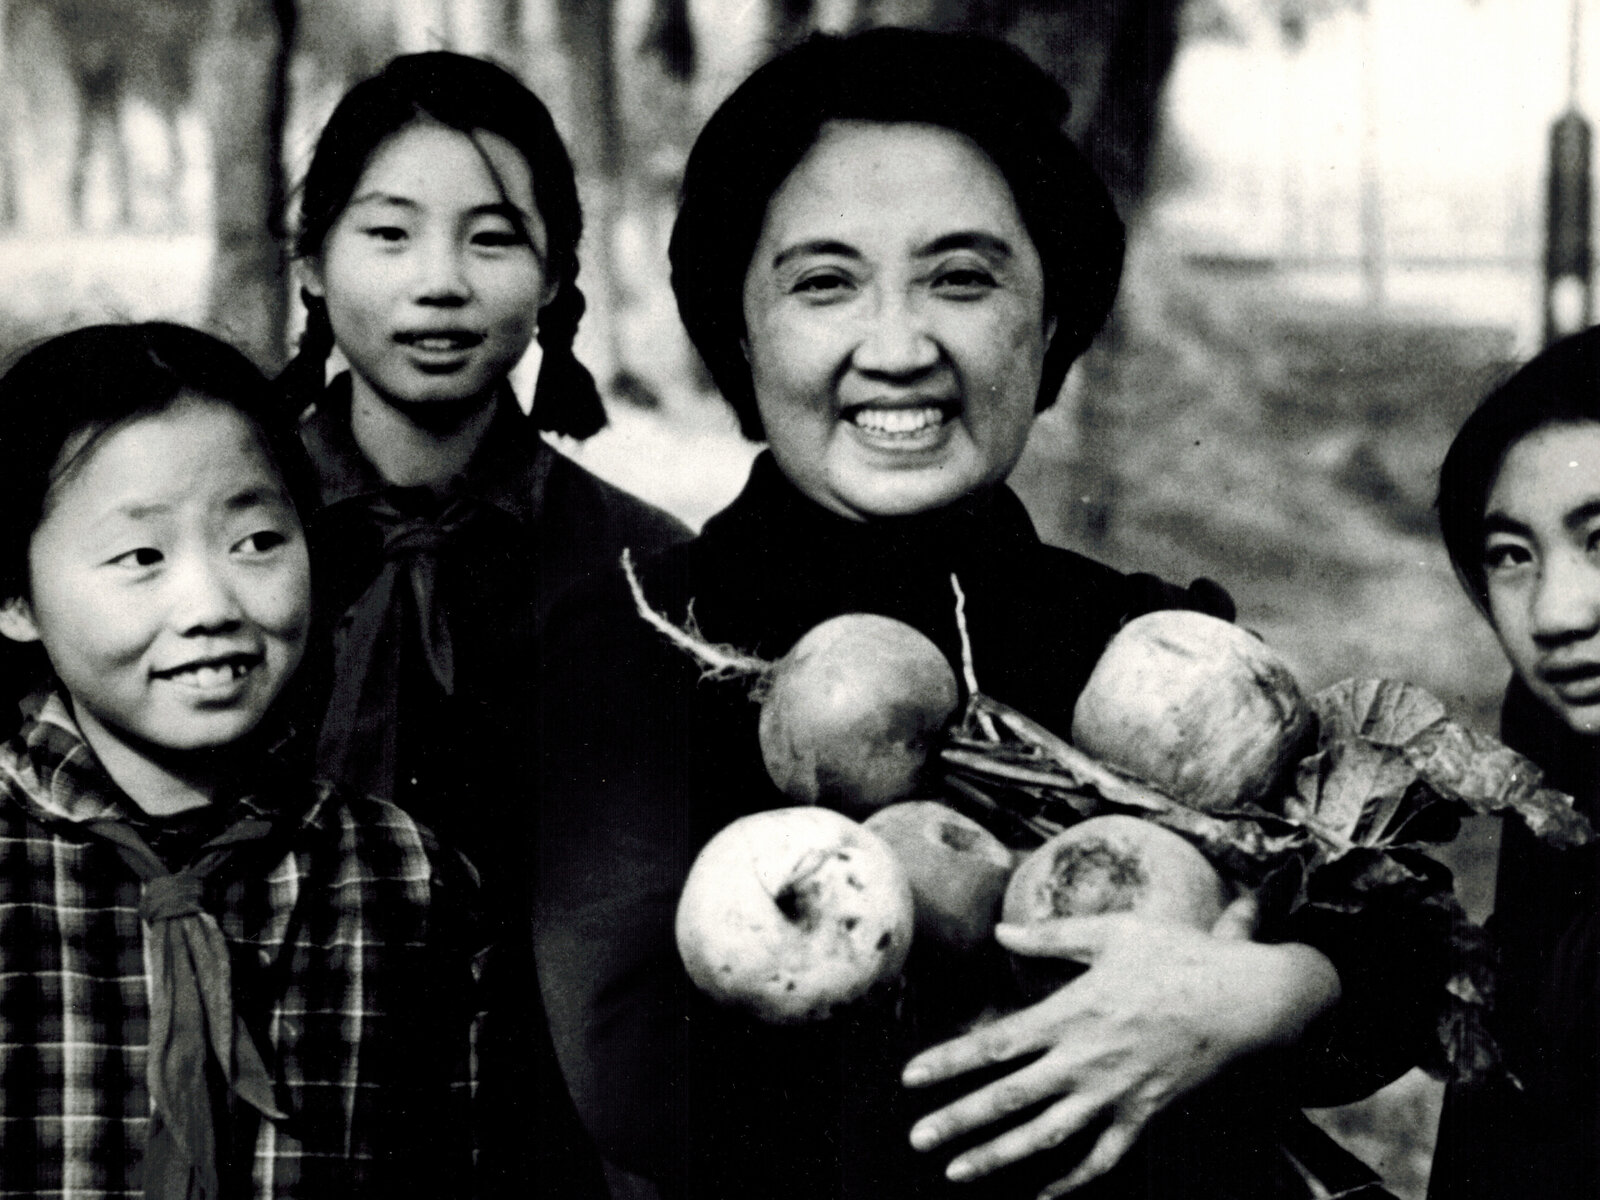 Joyce Chen (center) holds large Chinese radishes picked by middle-school students in Beijing, China, in 1972.